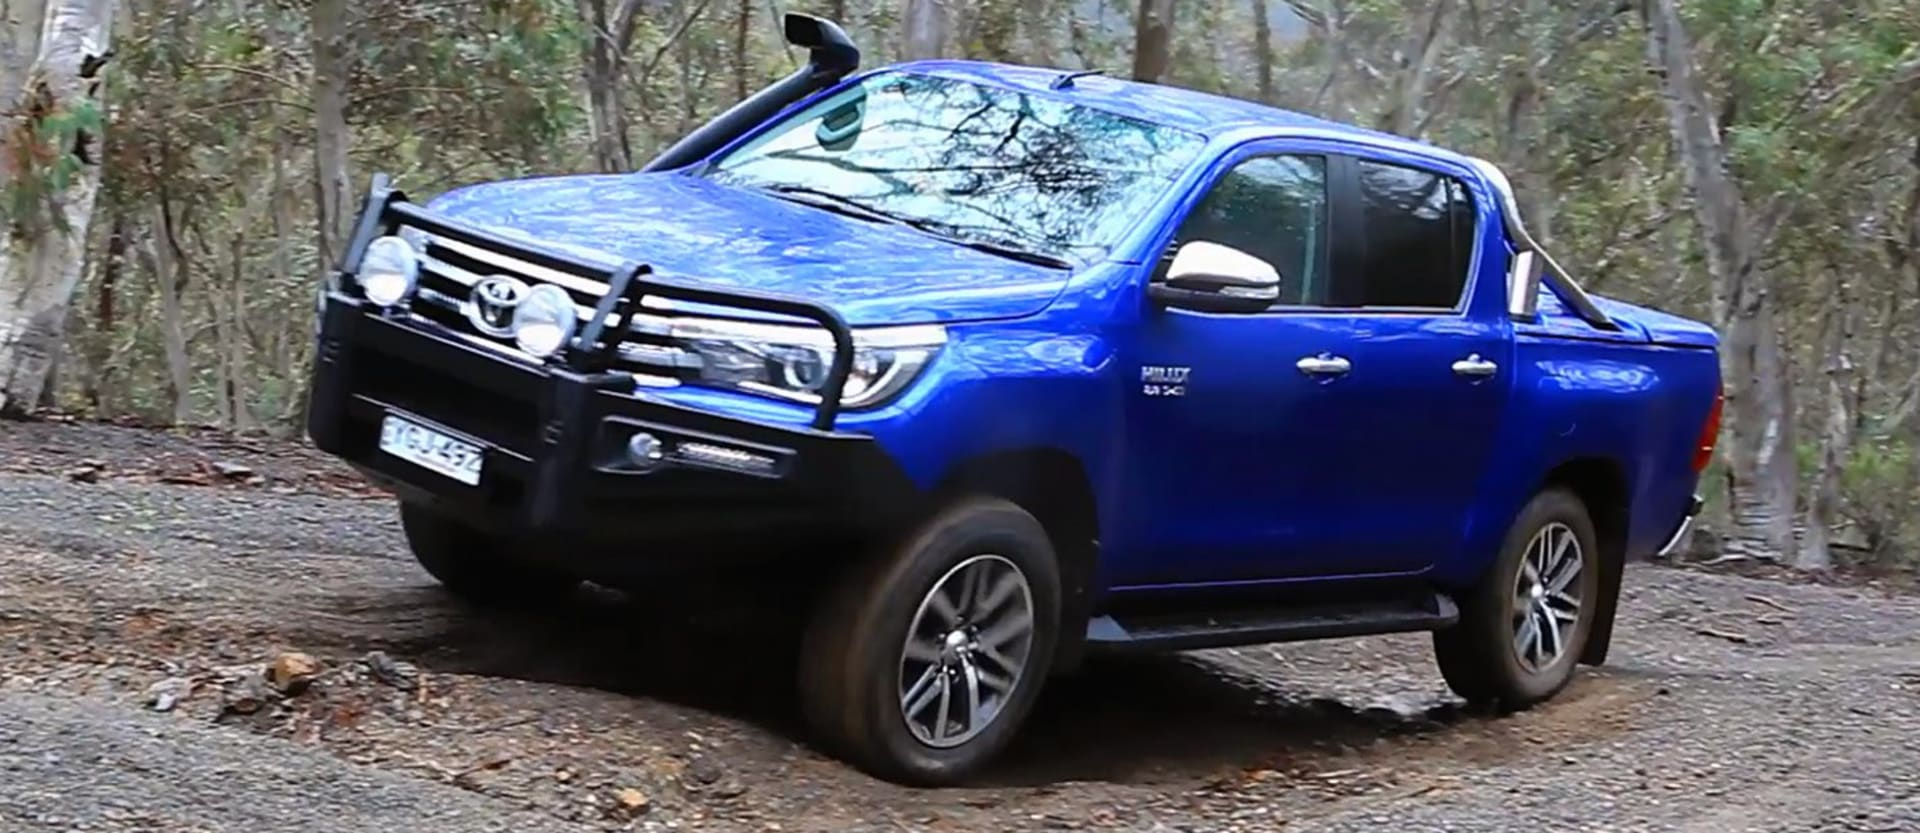 2016 Toyota Hilux SR5 joins the 4x4 shed